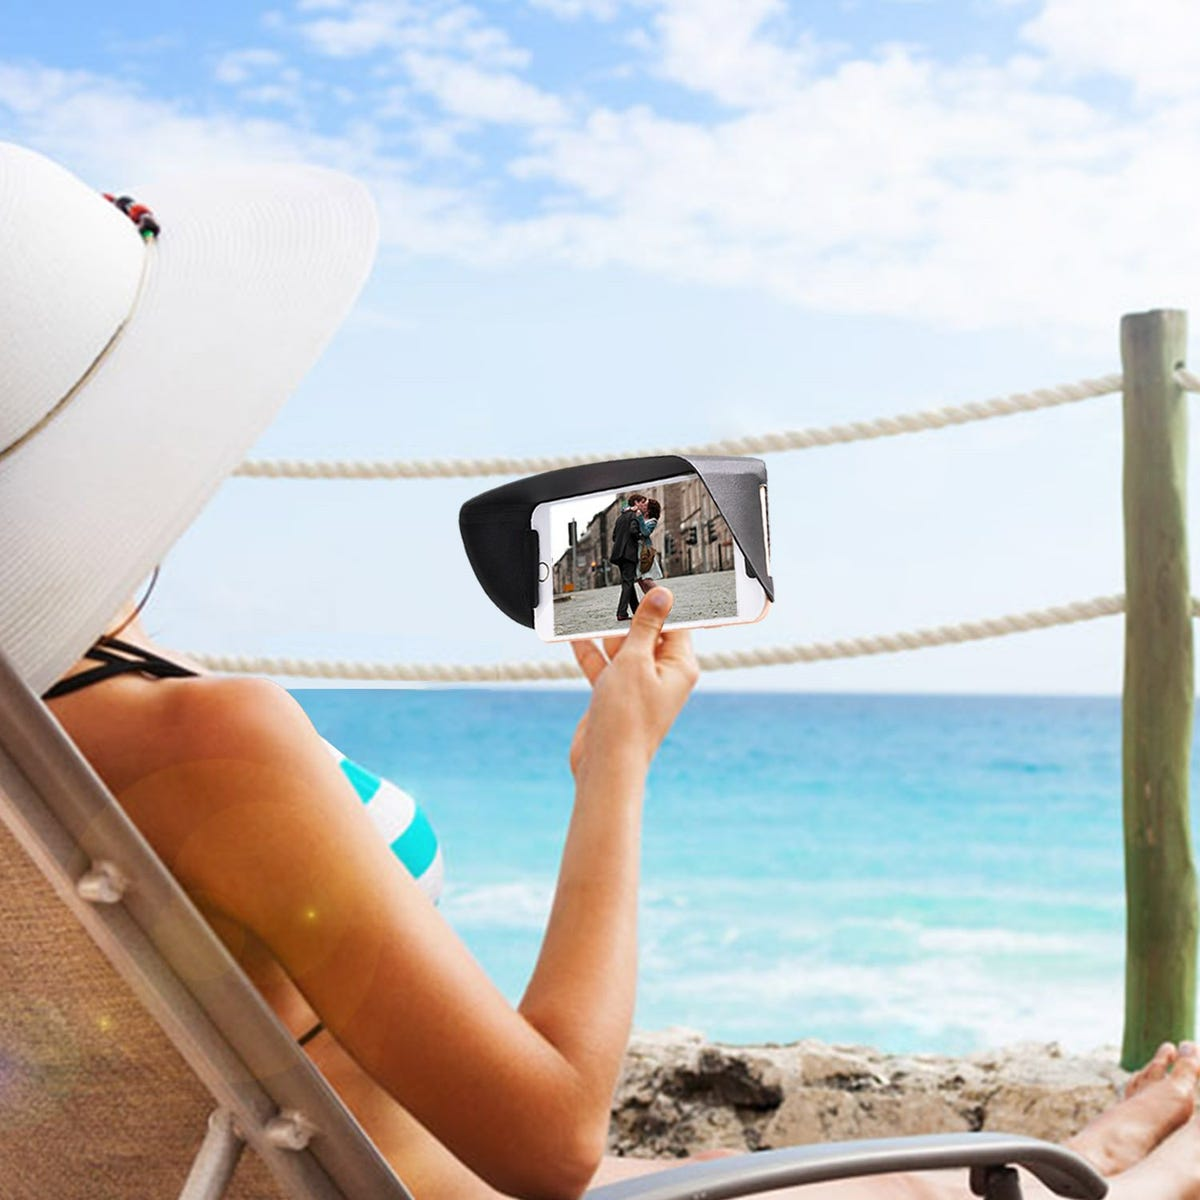 ea297e14b4 How to use your smartphone at the beach and in bright sunlight